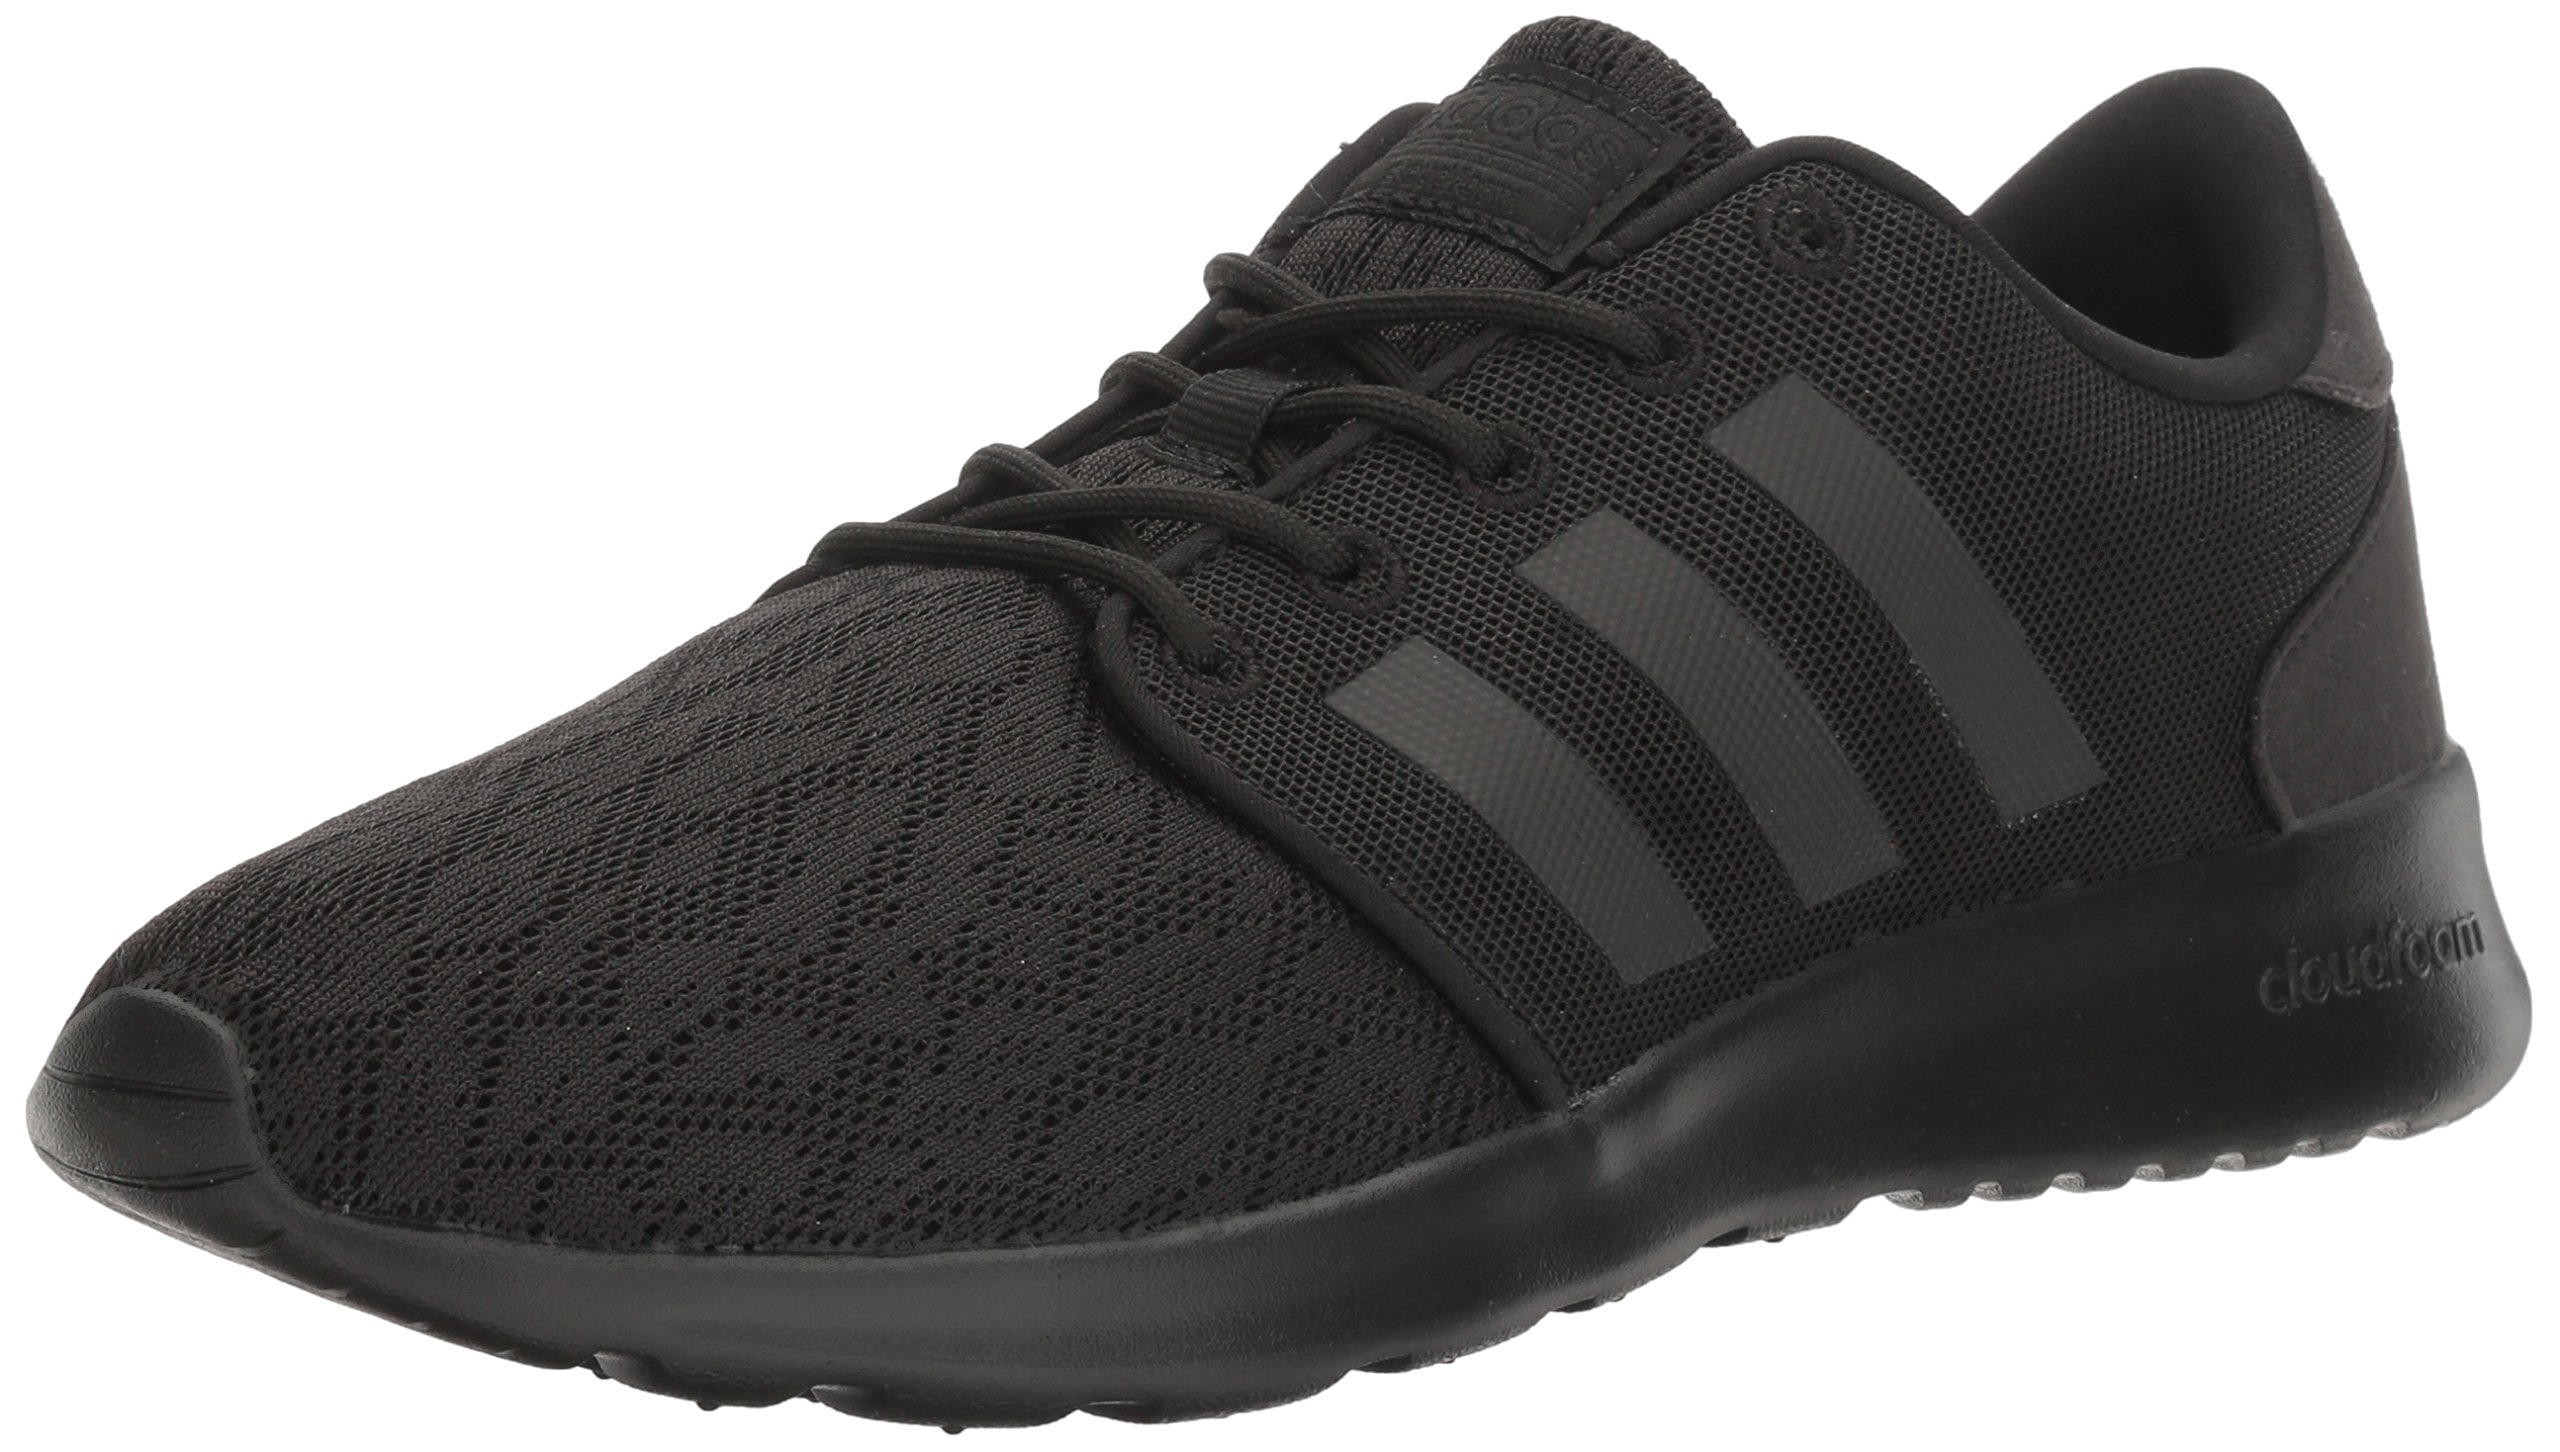 adidas Women's Cloudfoam QT Racer Running Shoe Black/White, 5.5 B - Medium